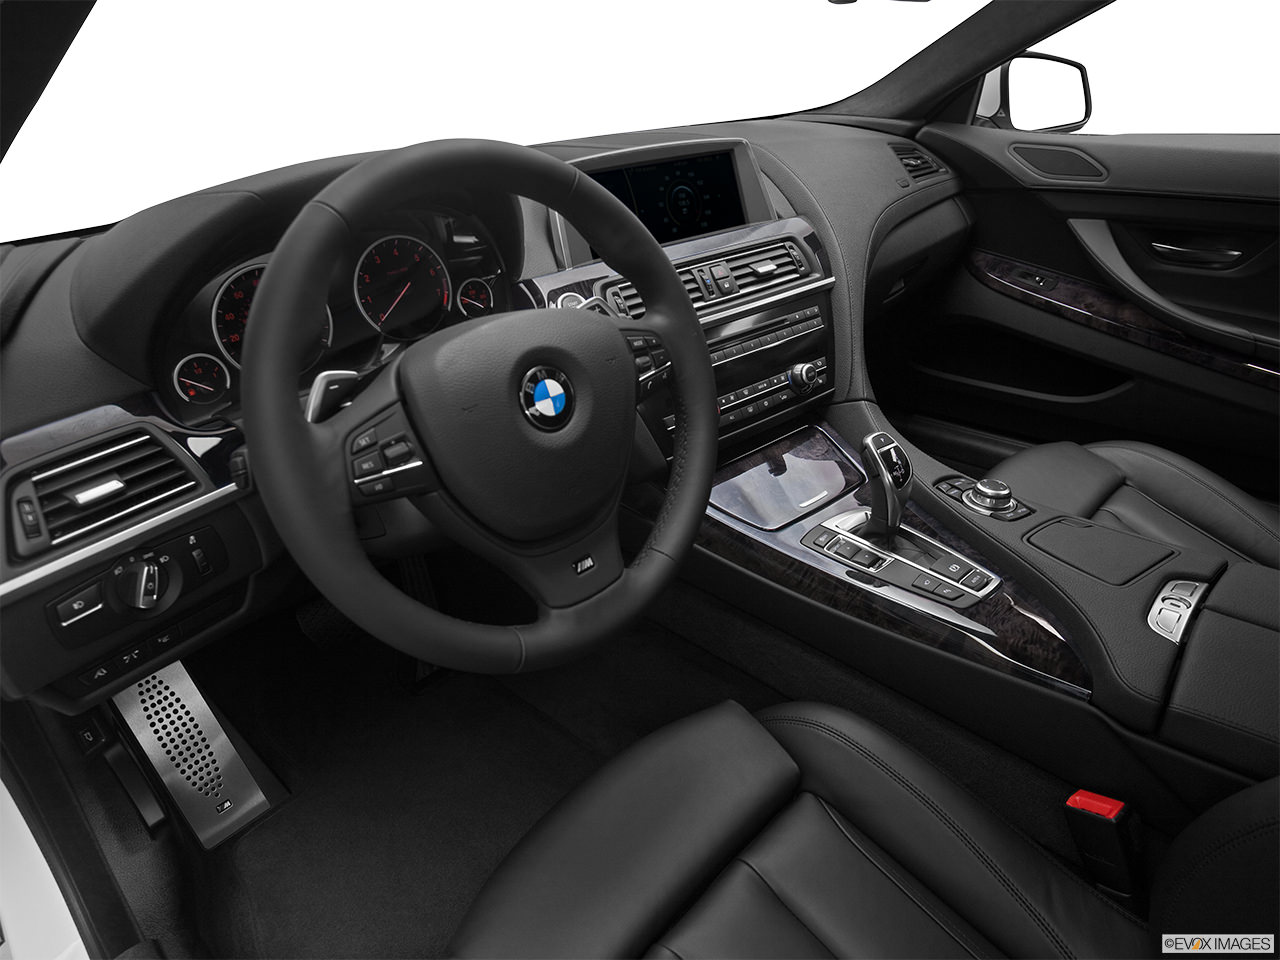 BMW 6-Series 2012 Interior